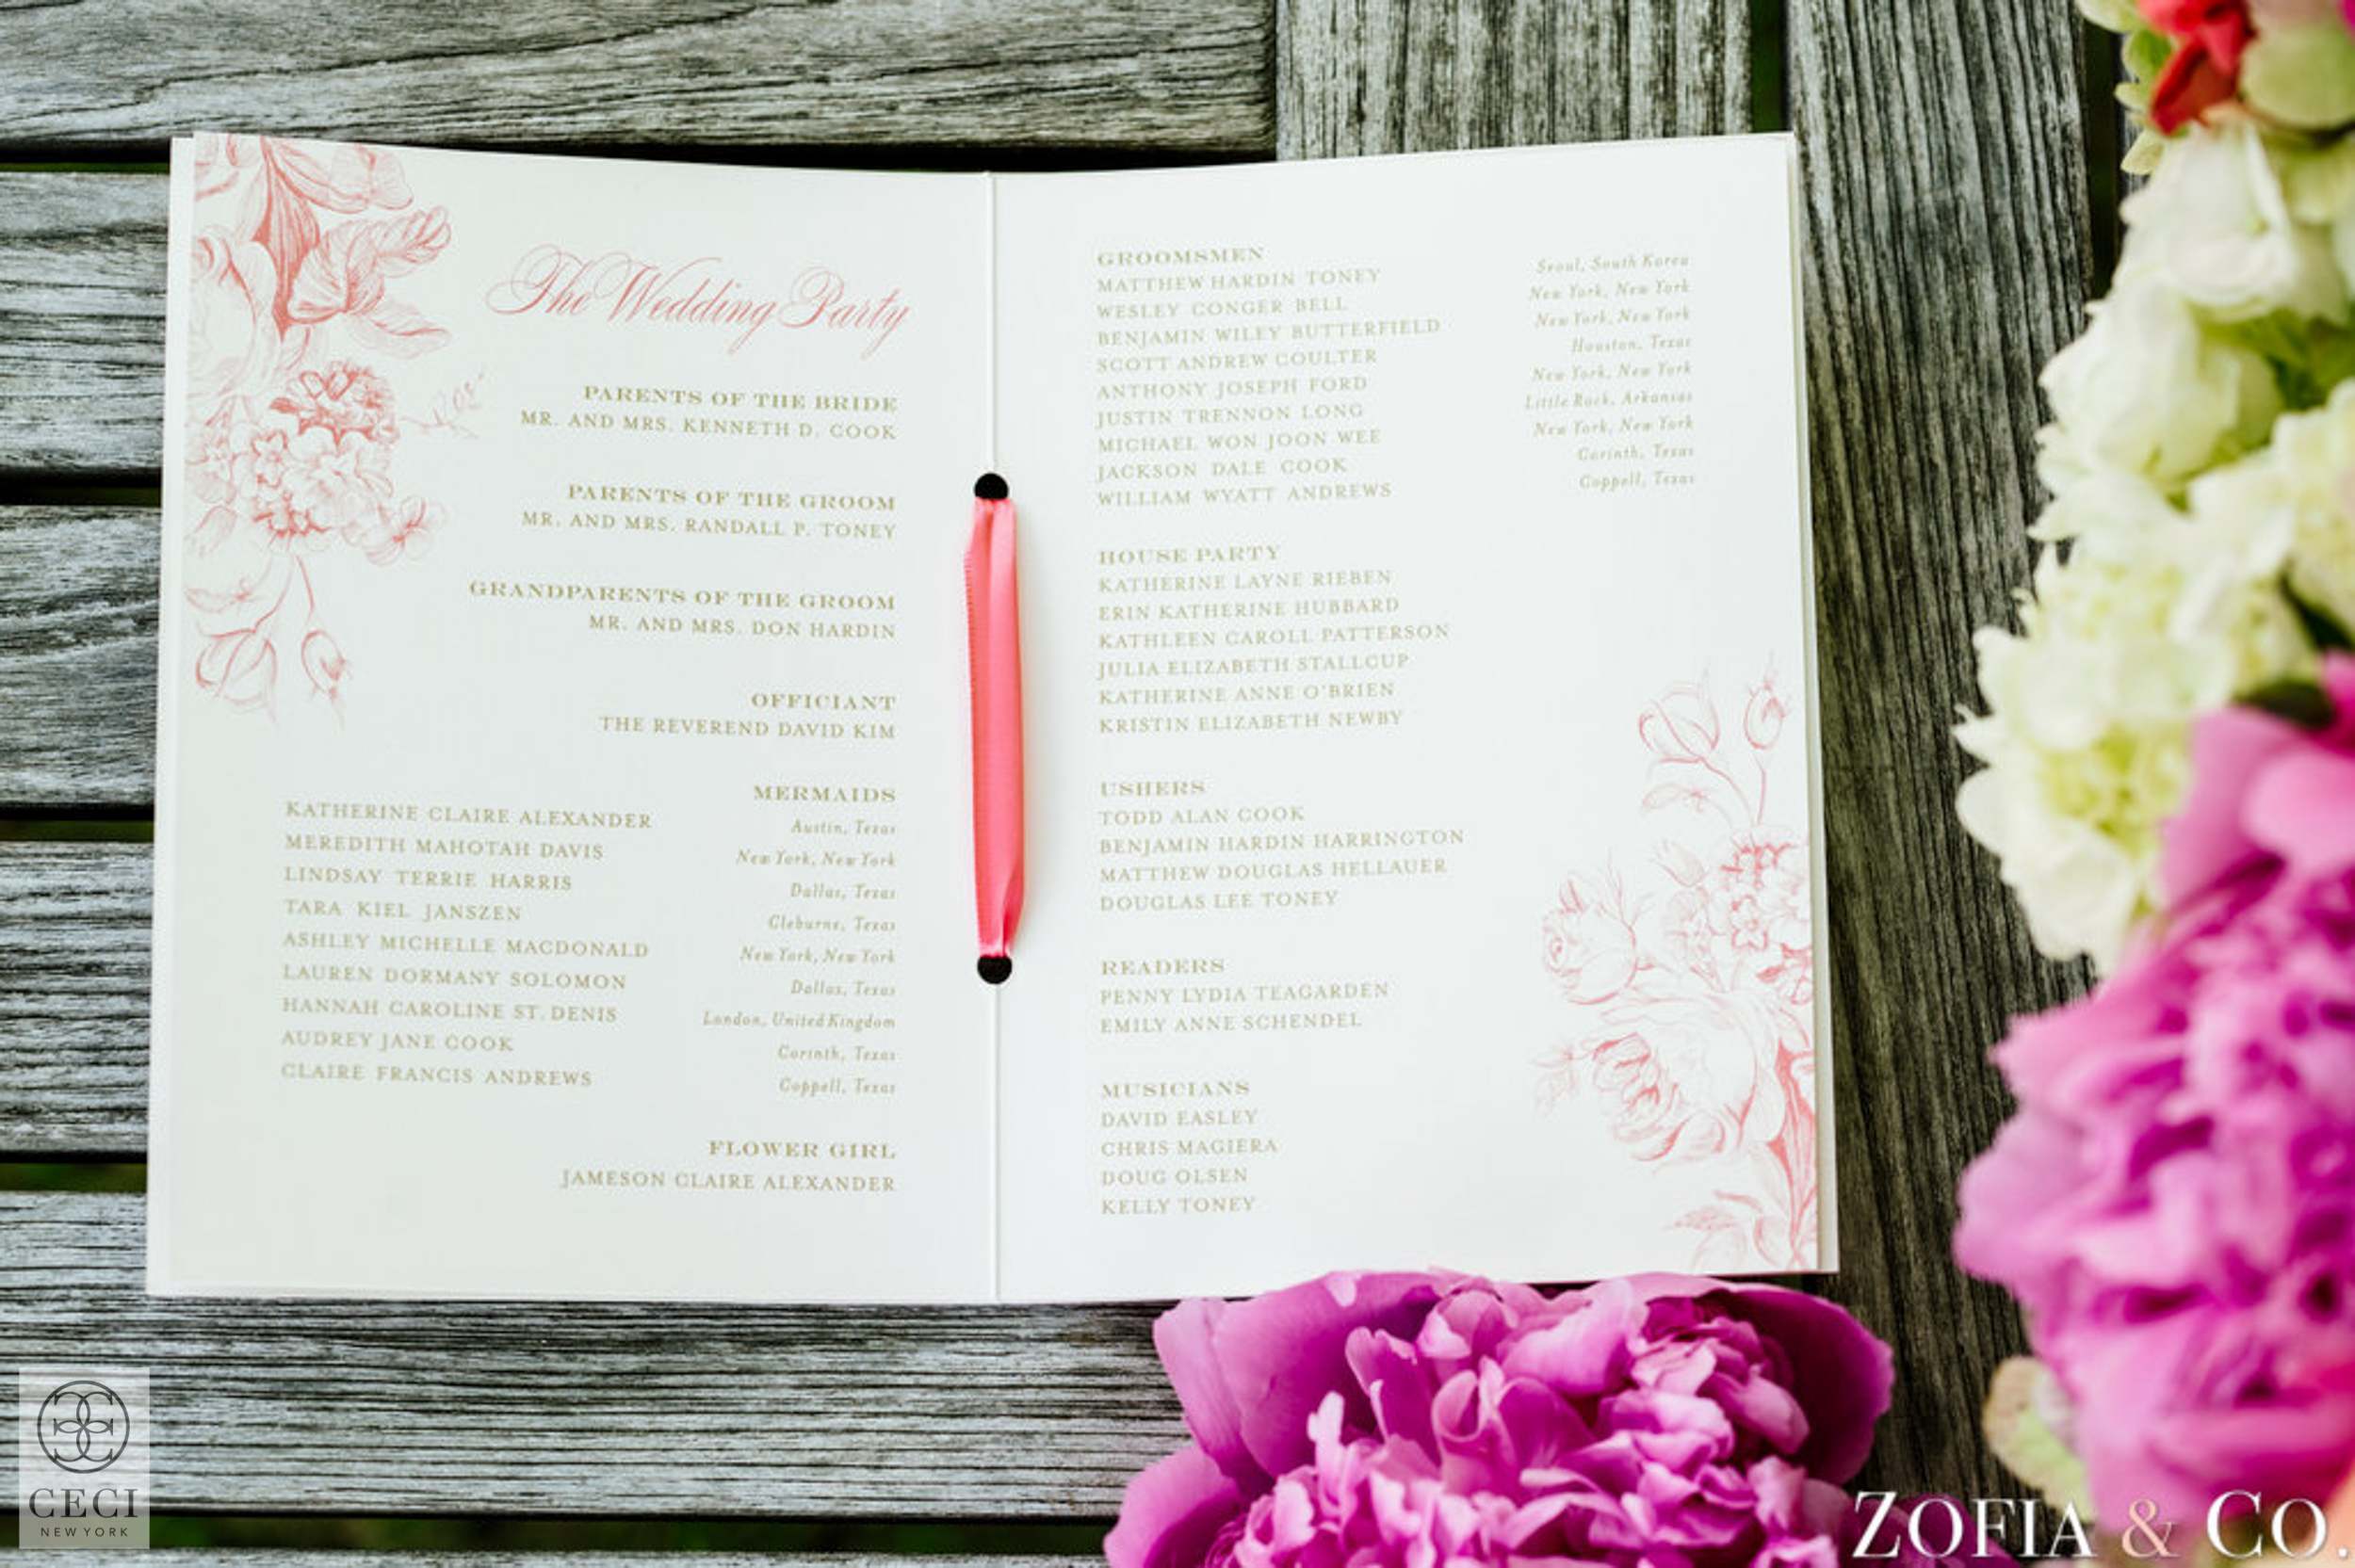 Ceci_New_York_Custom_Luxury_Wedding_LaserCut_Stationery_Personalized_Couture_Foil_Stamping_Black_Chic_-11 copy.jpg